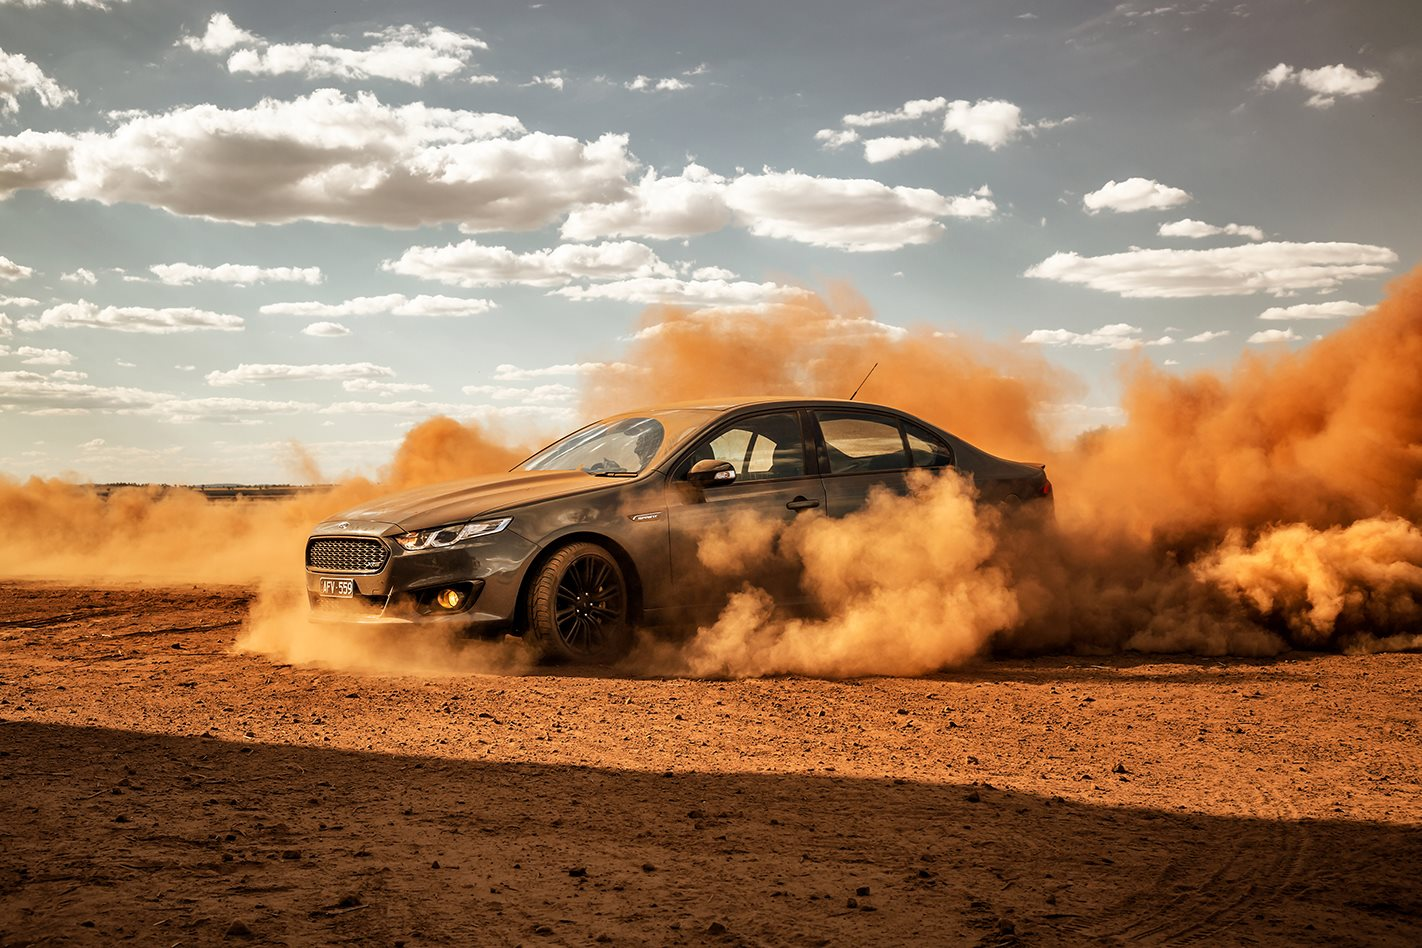 The Collection' is our celebration of the greatest automotive photography in Australia